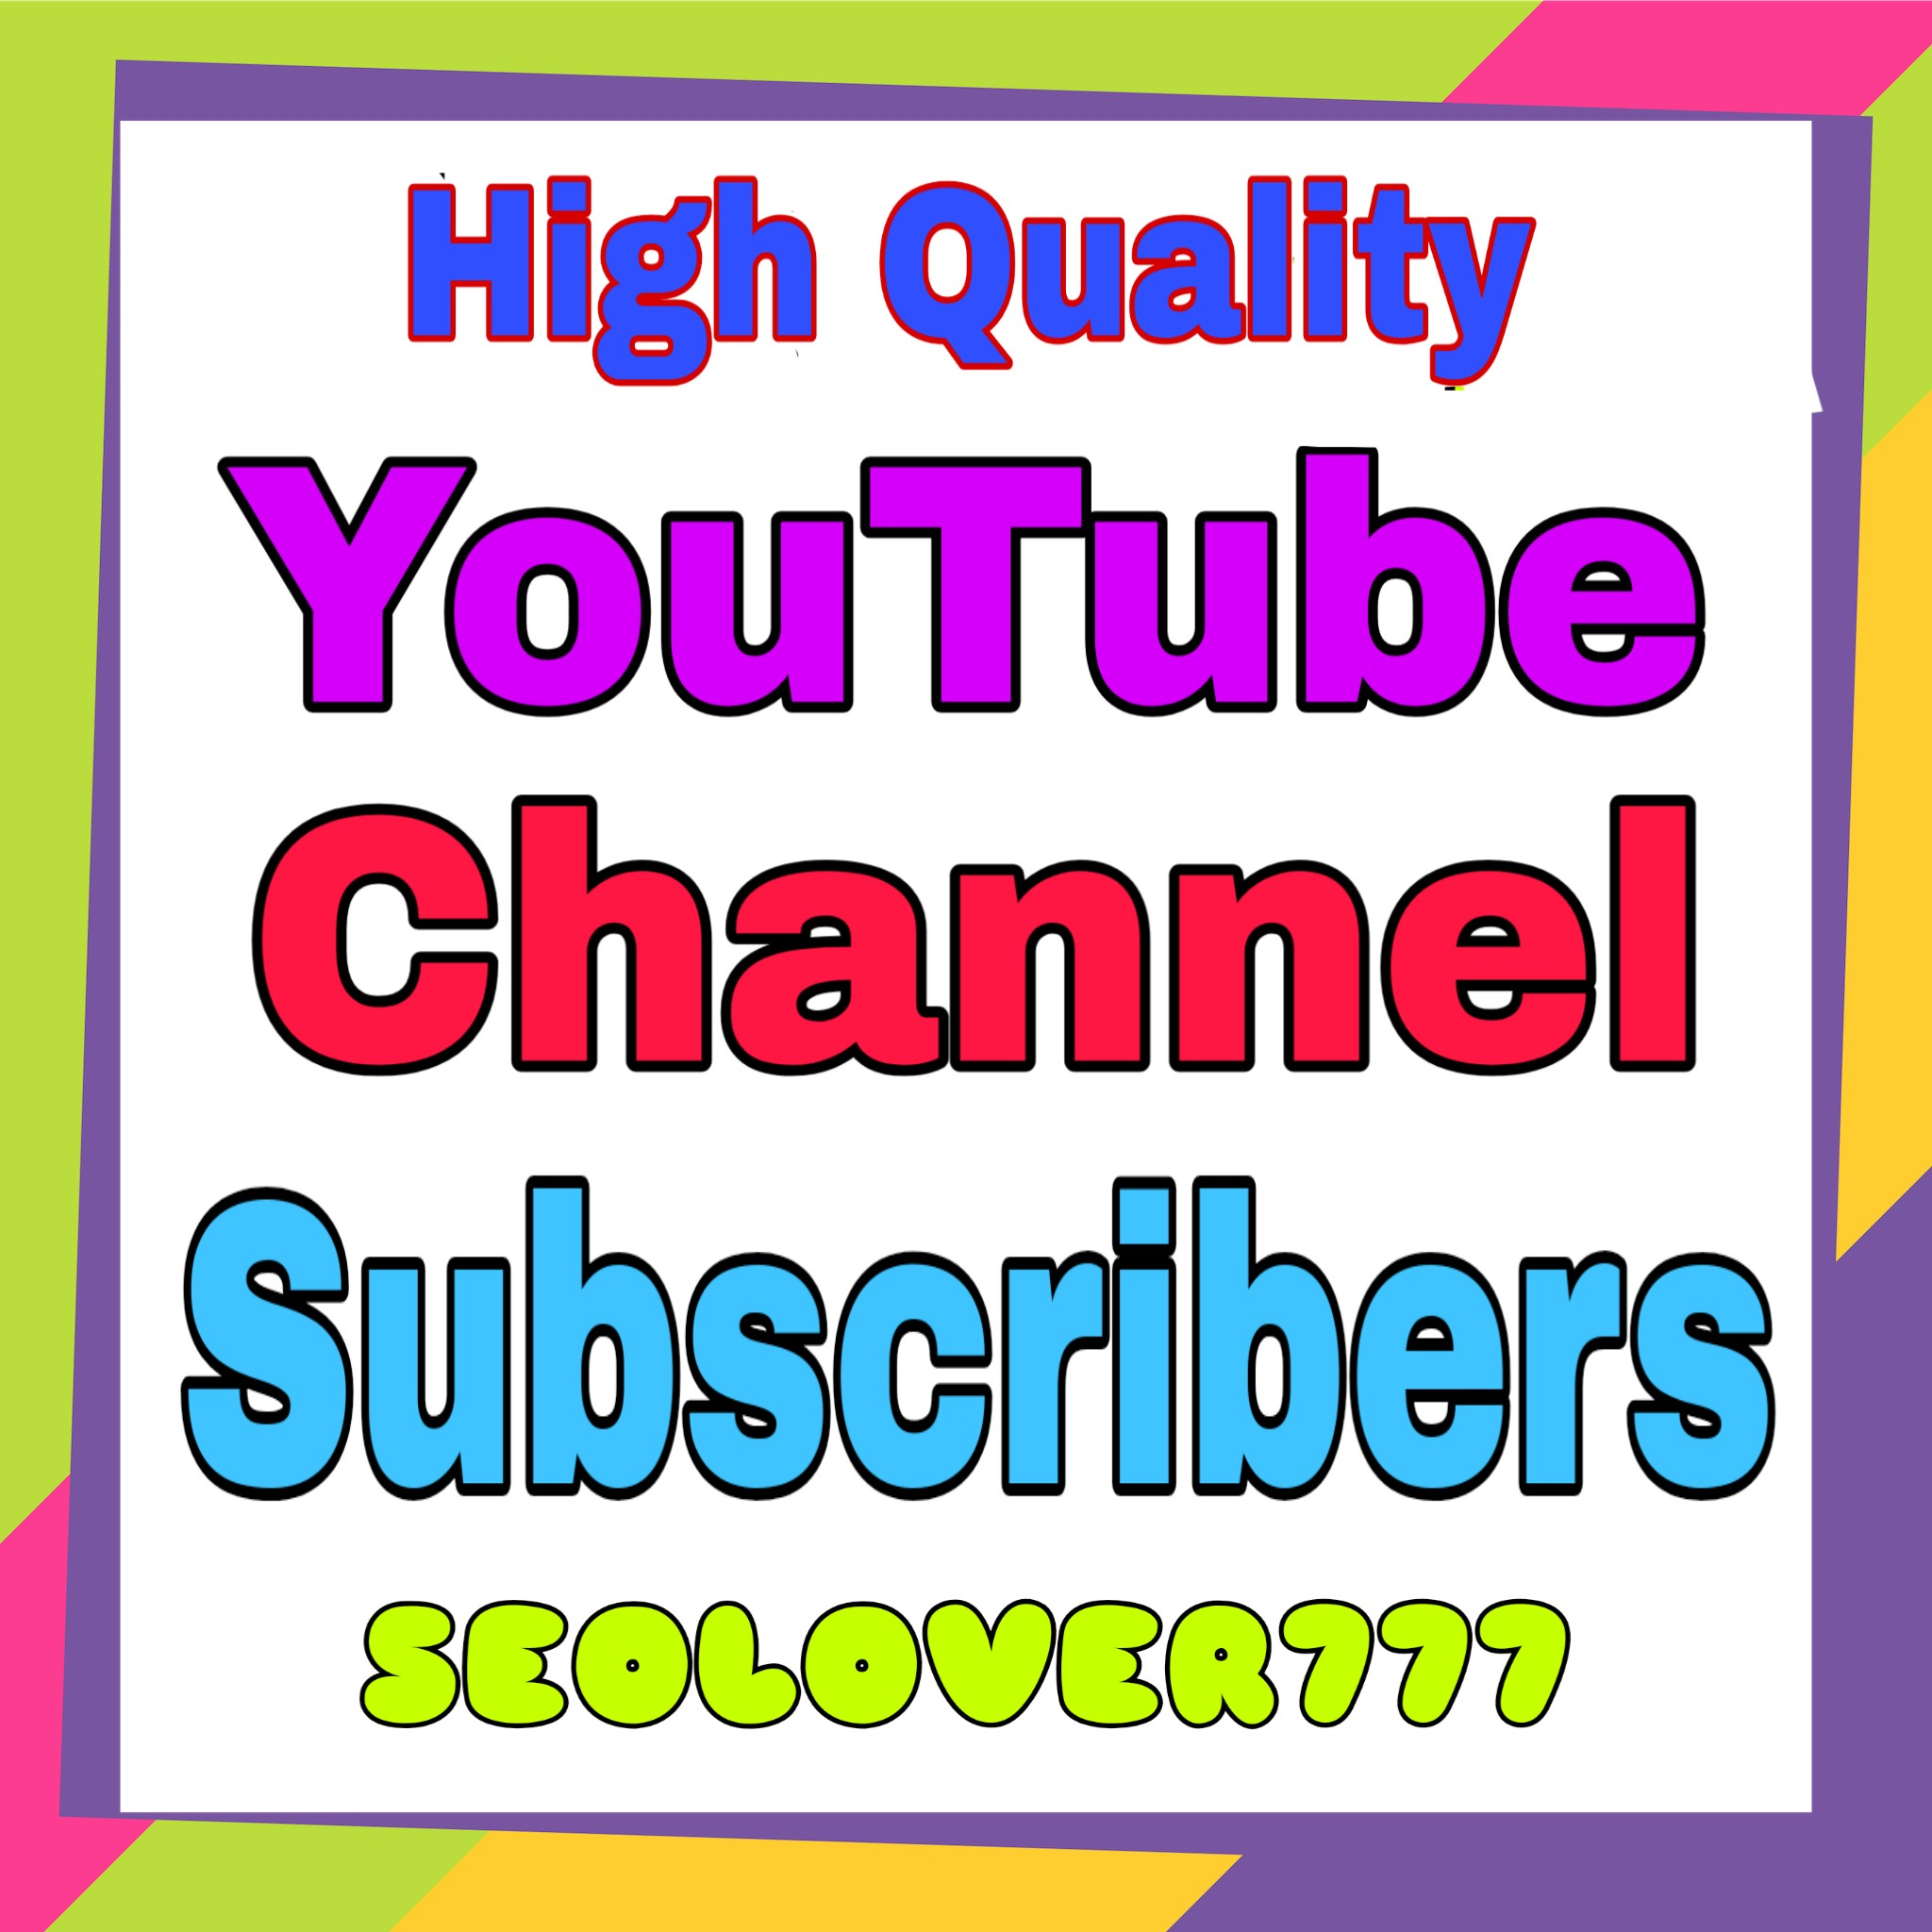 YouTube non drop & high quality promotion & marketing only